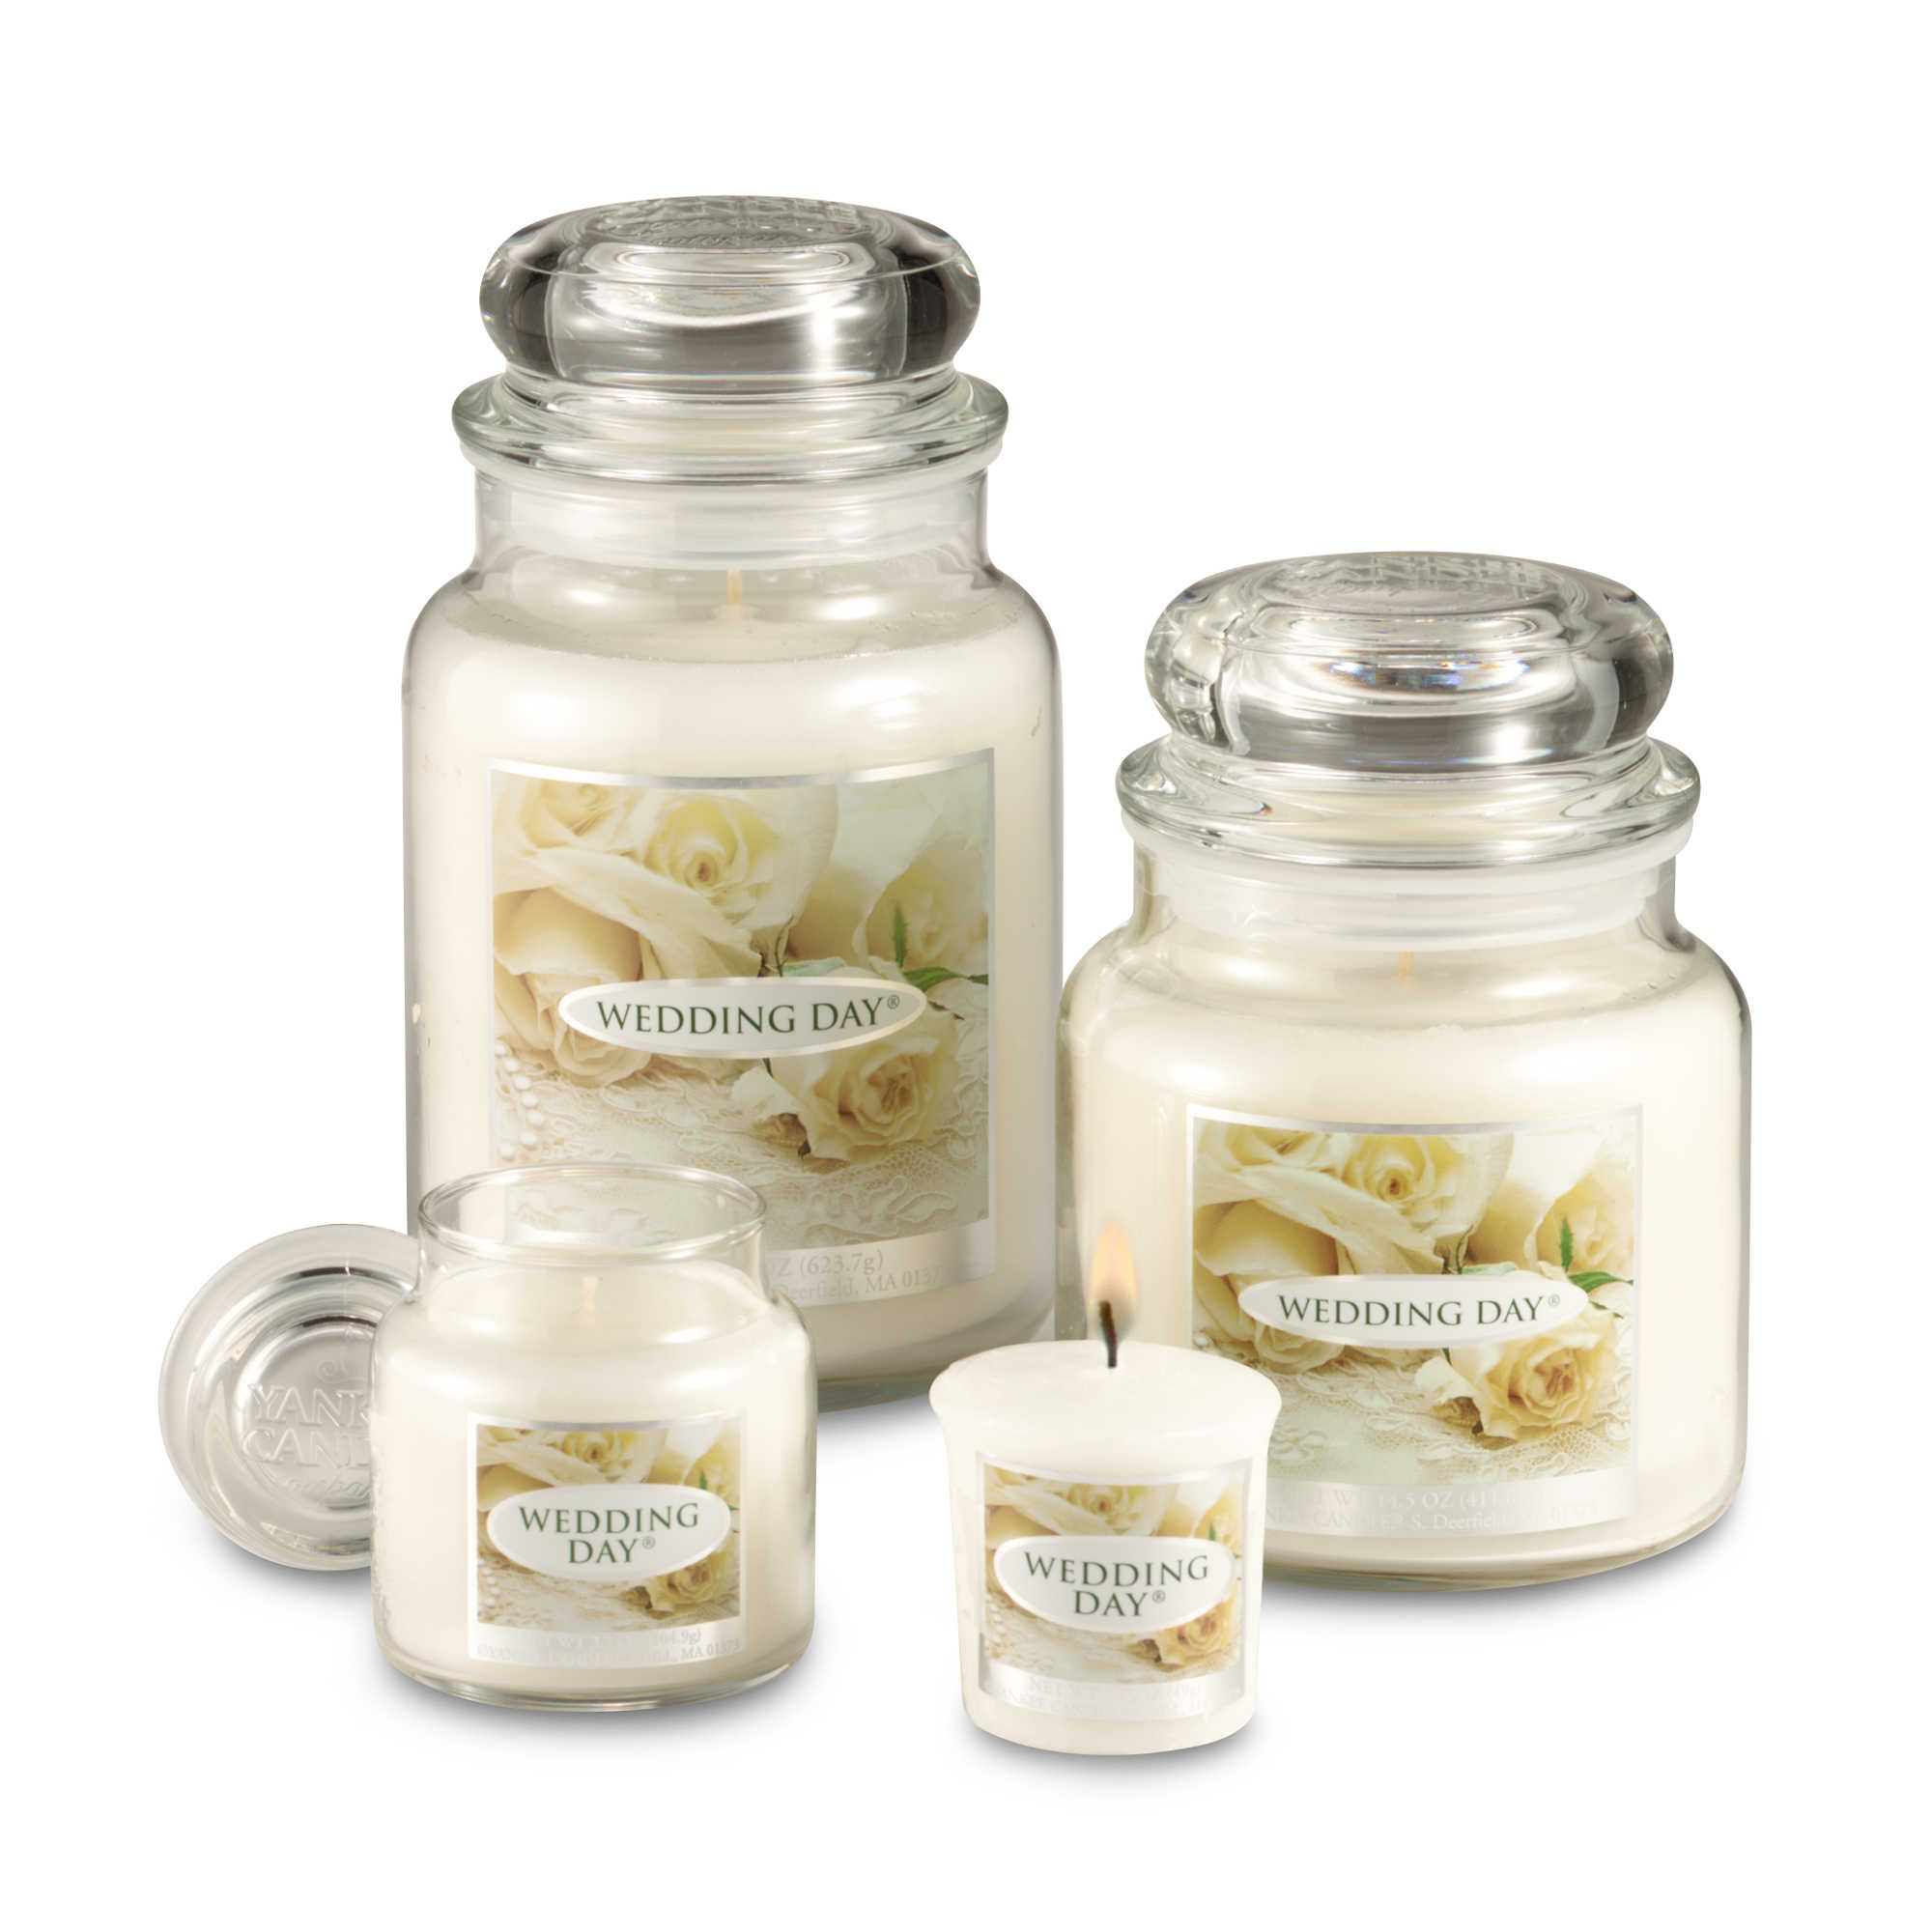 Yankee Candle Wedding Day Scented Candles